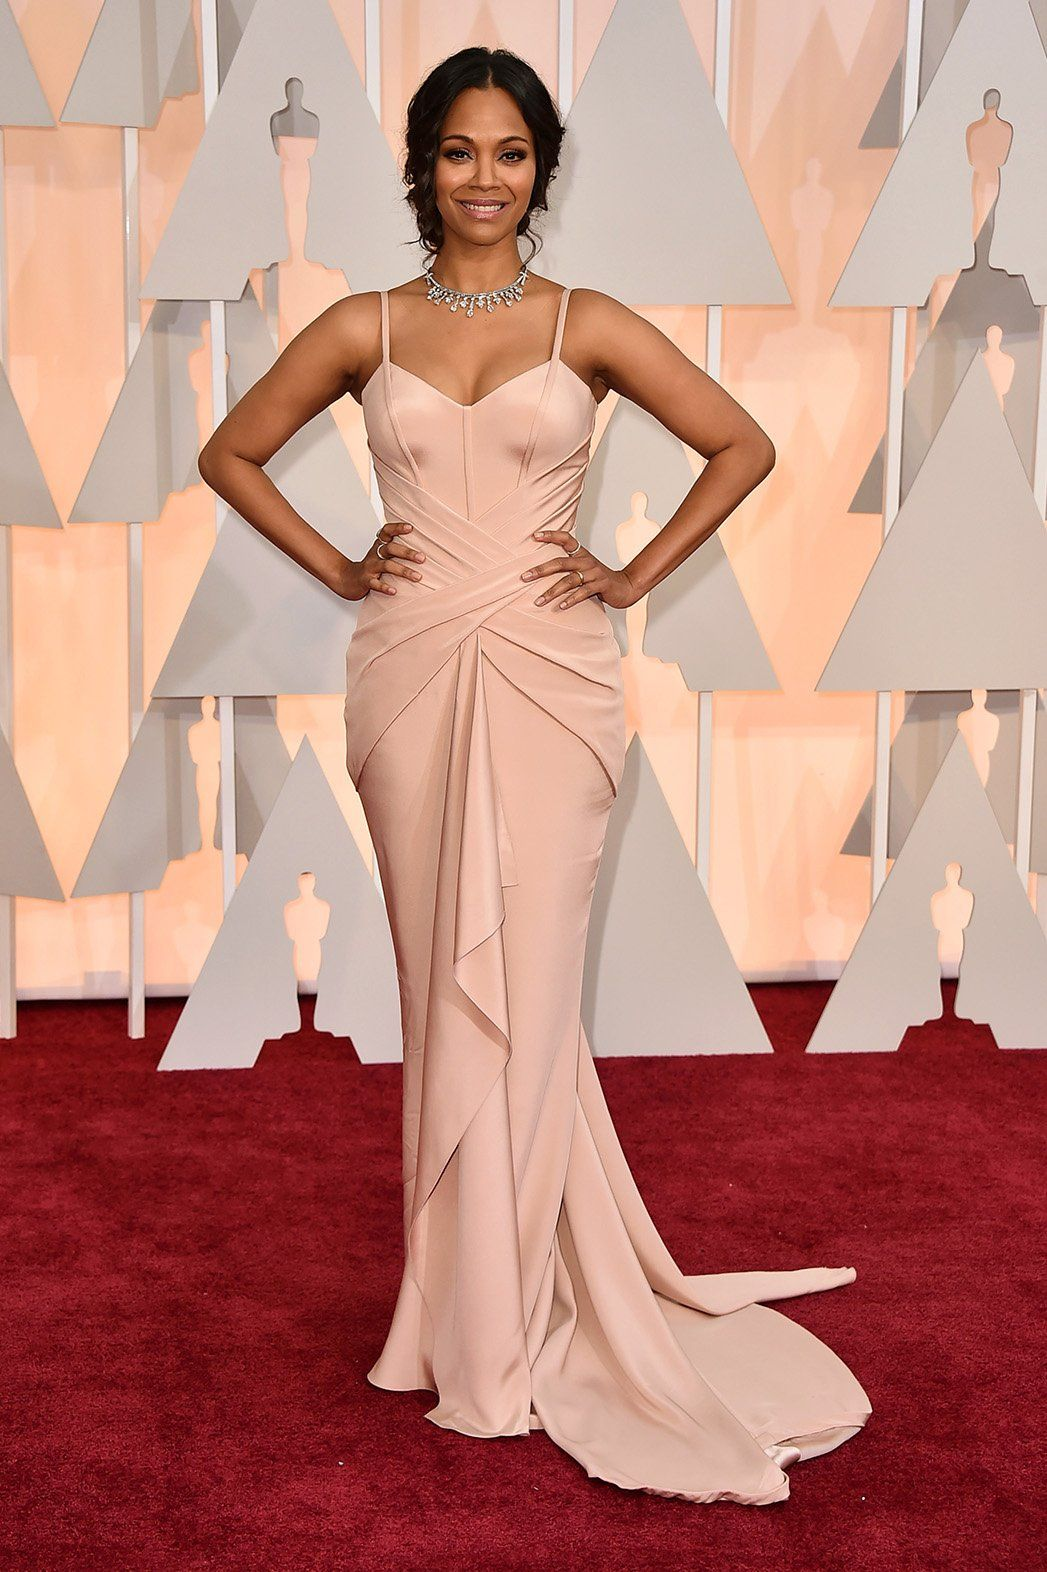 3927551636 Zoe Saldana Celebrity Actress Blush Pink Atelier Versace Gown Silver  Statement Necklace Oscars 2015 Red Carpet Stunning Elegant Black African  American Women ...